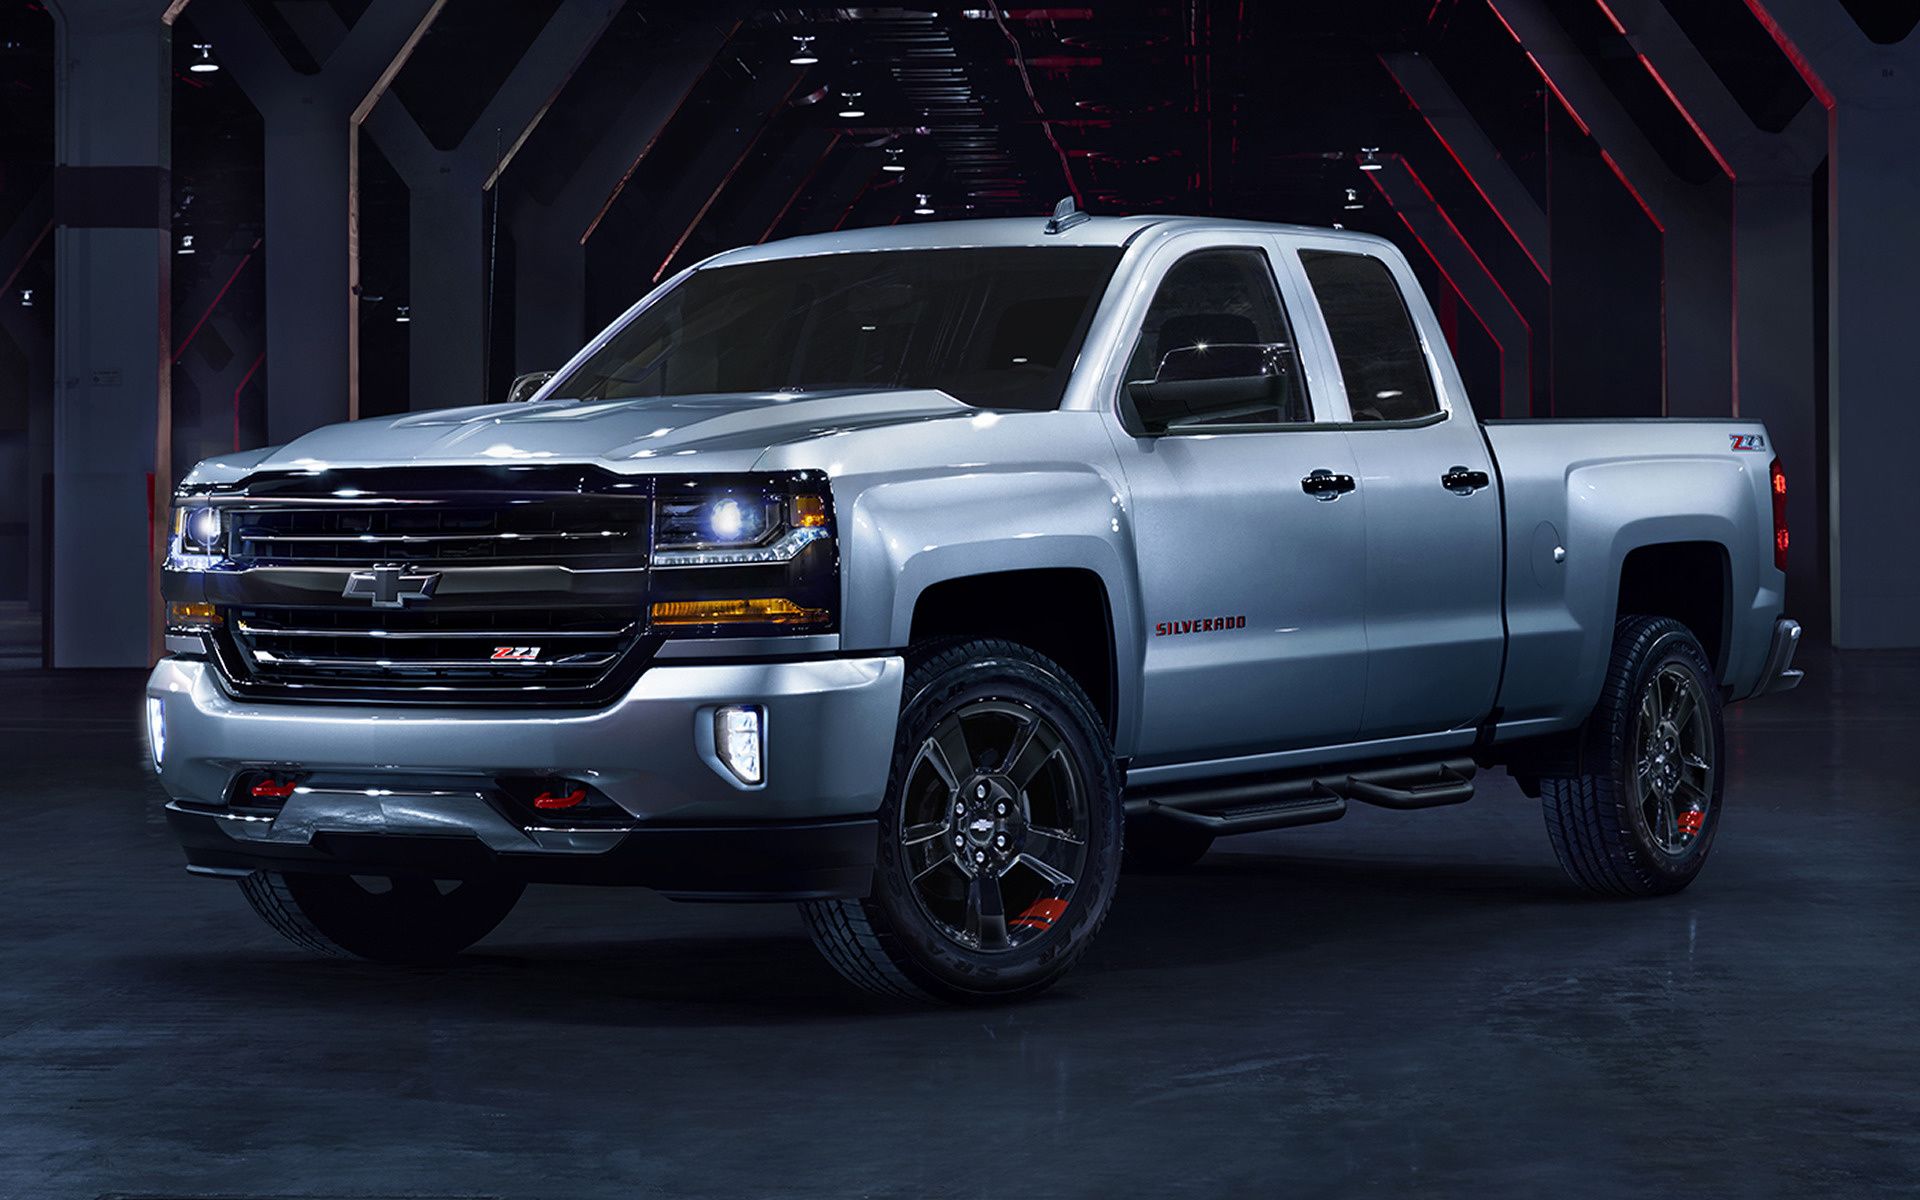 Chevrolet Silverado Z71 Redline Crew Cab 2017 Wallpapers